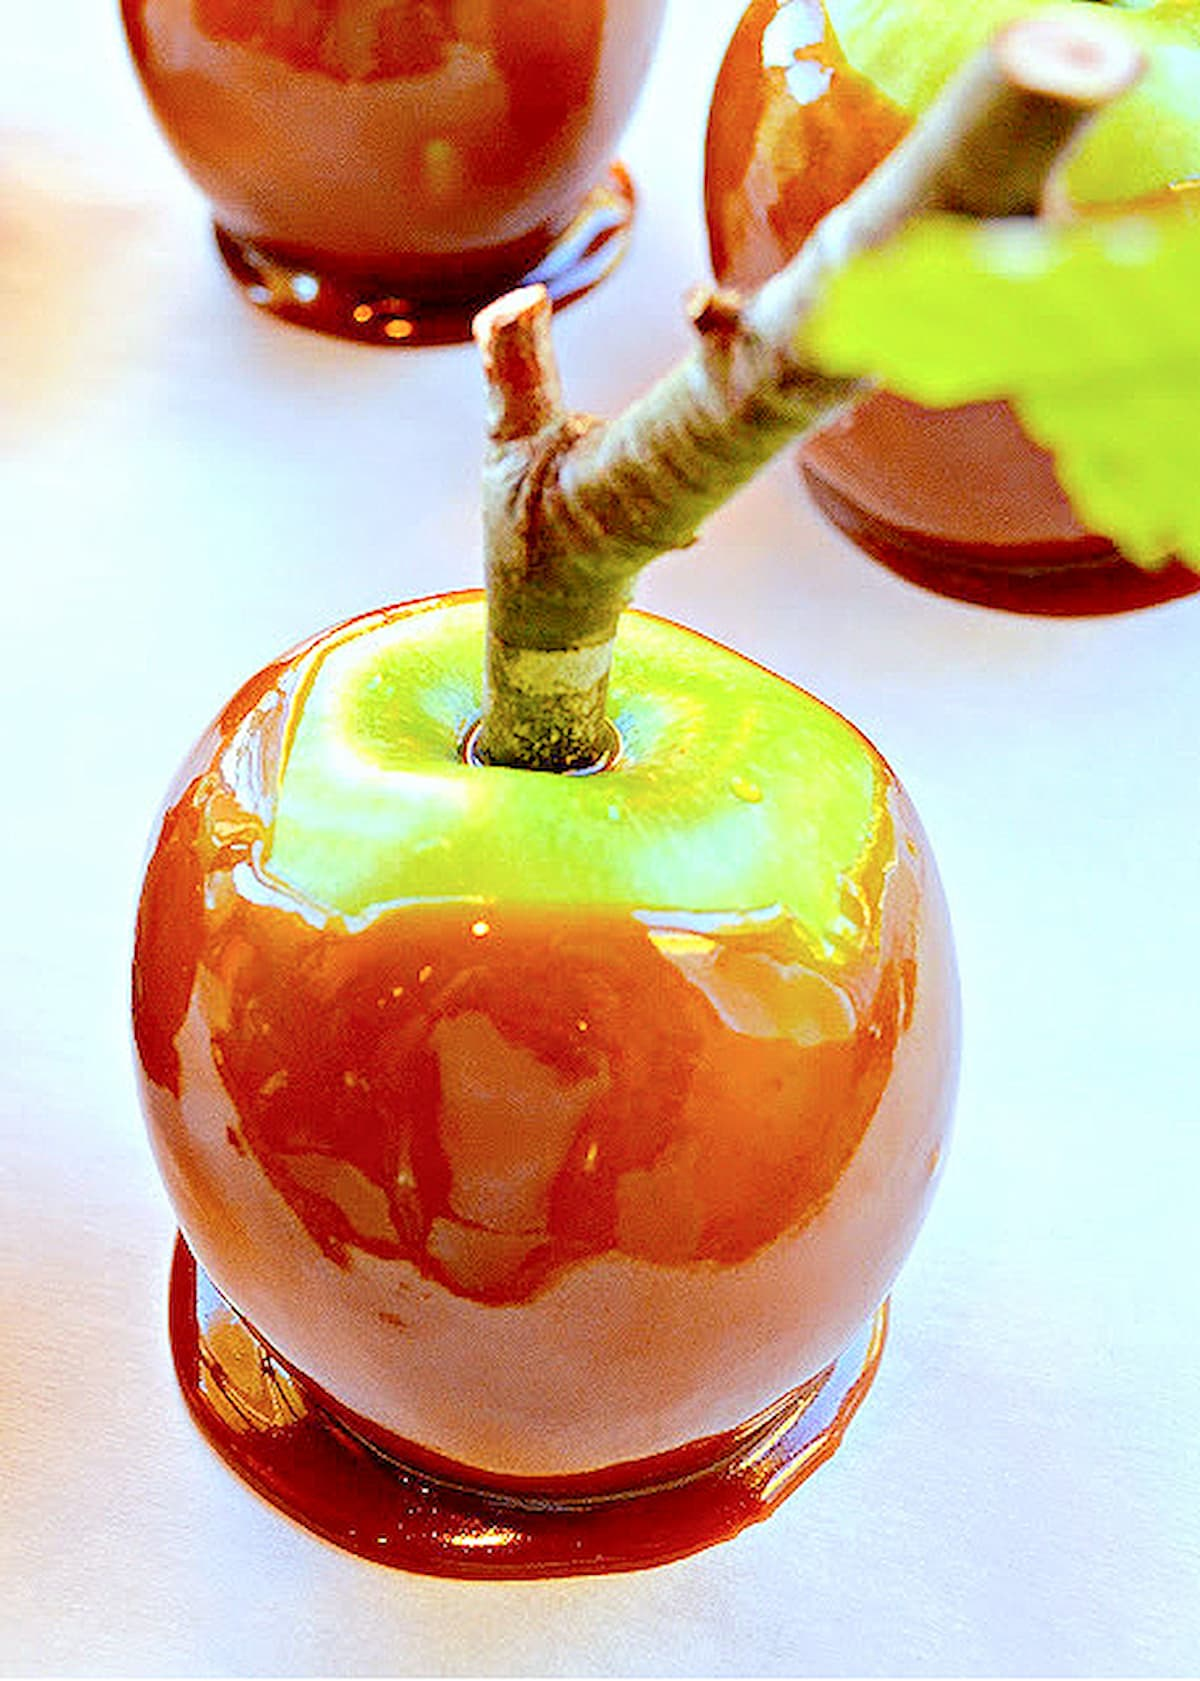 Caramel Apples with a twig stuck in them for a handle on a piece of parchment paper.